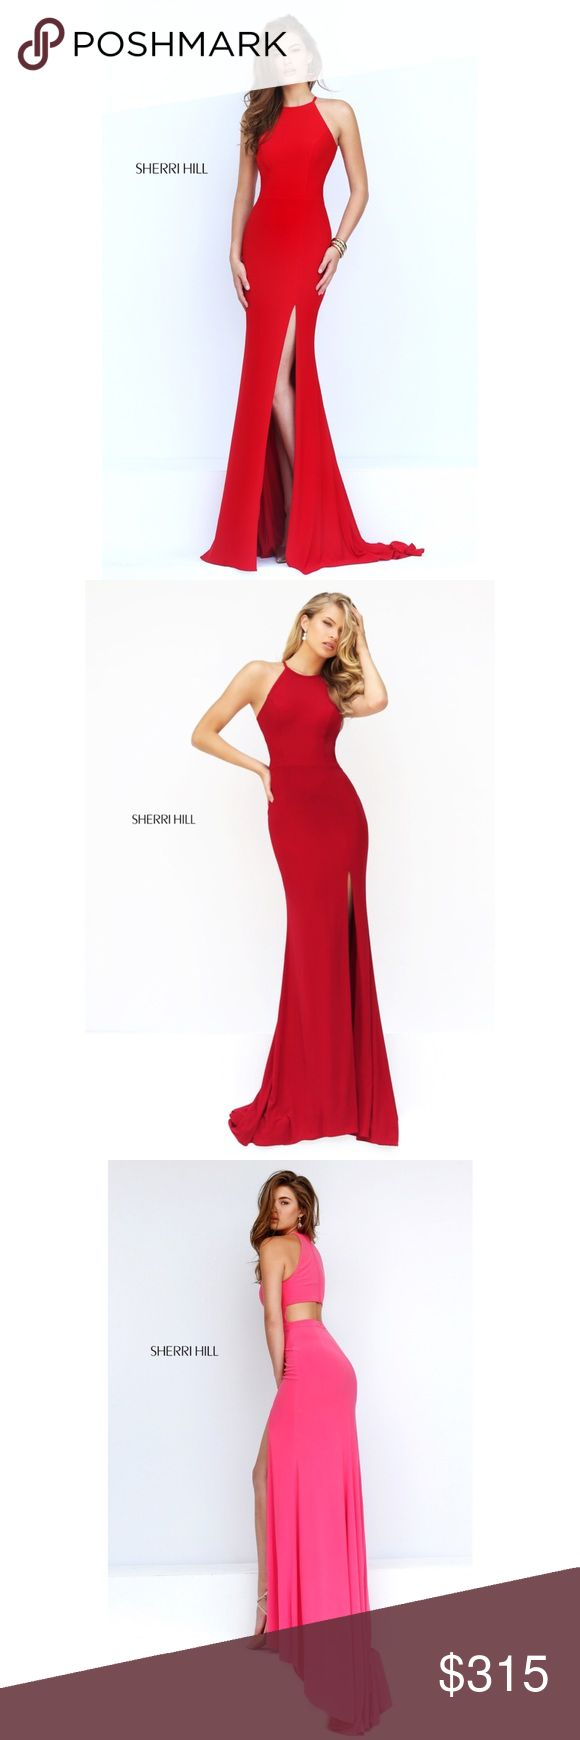 🔴SOLD🔴 Sherri Hill 32340 Selling it in red. I never got to wear it, so there is no damage or alteration. I can add more pictures if needed. Price negotiable on 🅿️🅿️ but firm here Sherri Hill Dresses Prom